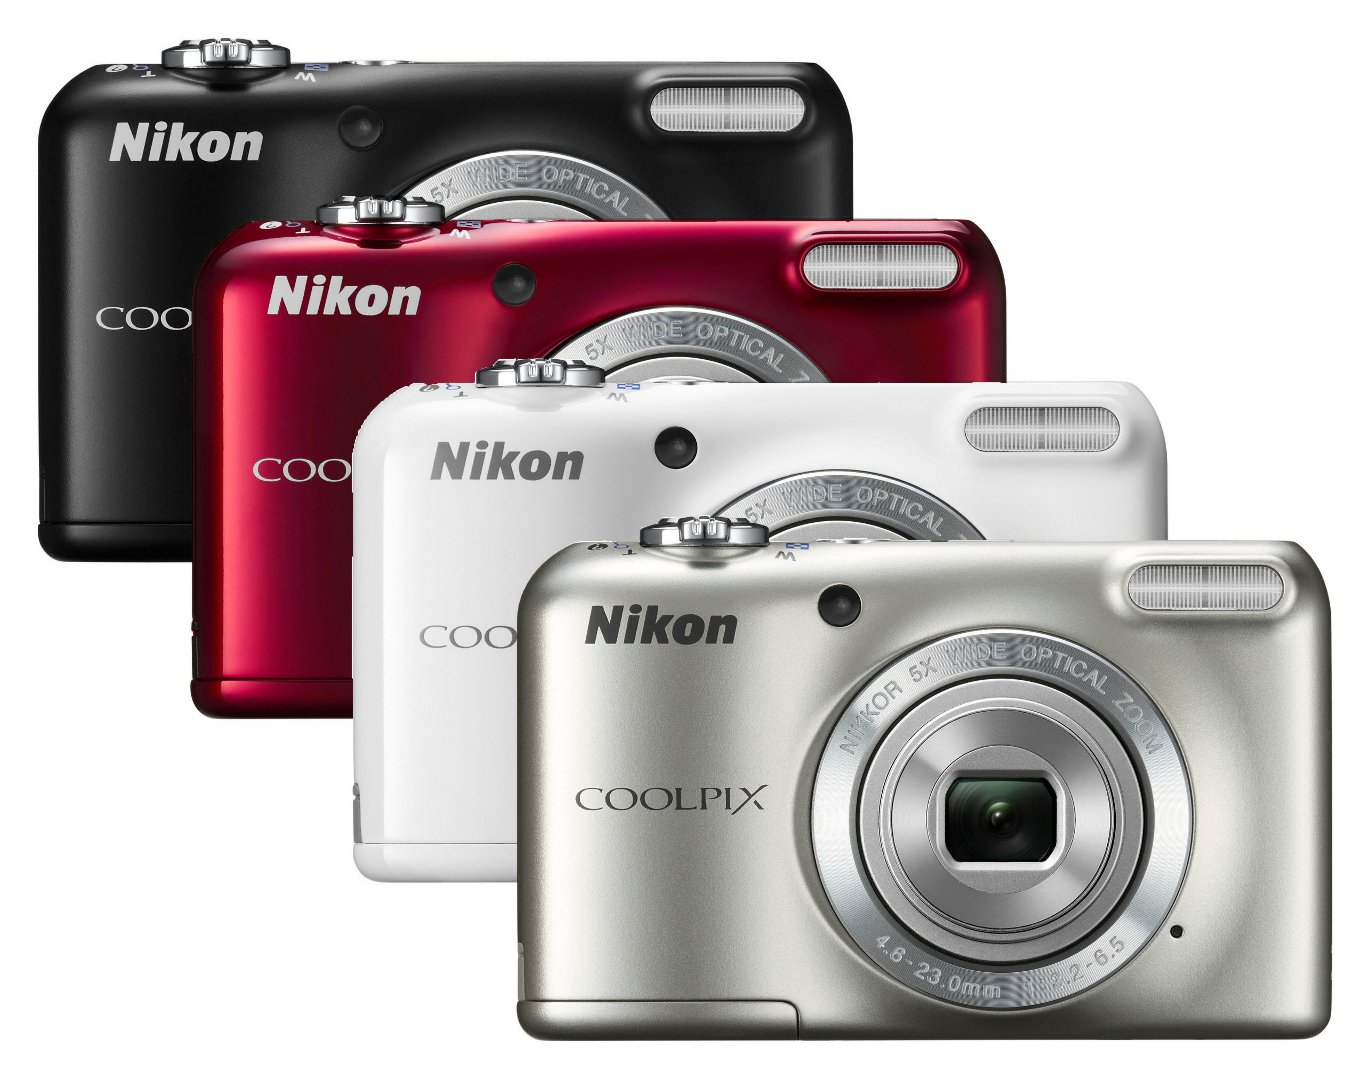 Style accessory the Nikon COOLPIX L27 is available in four stylish